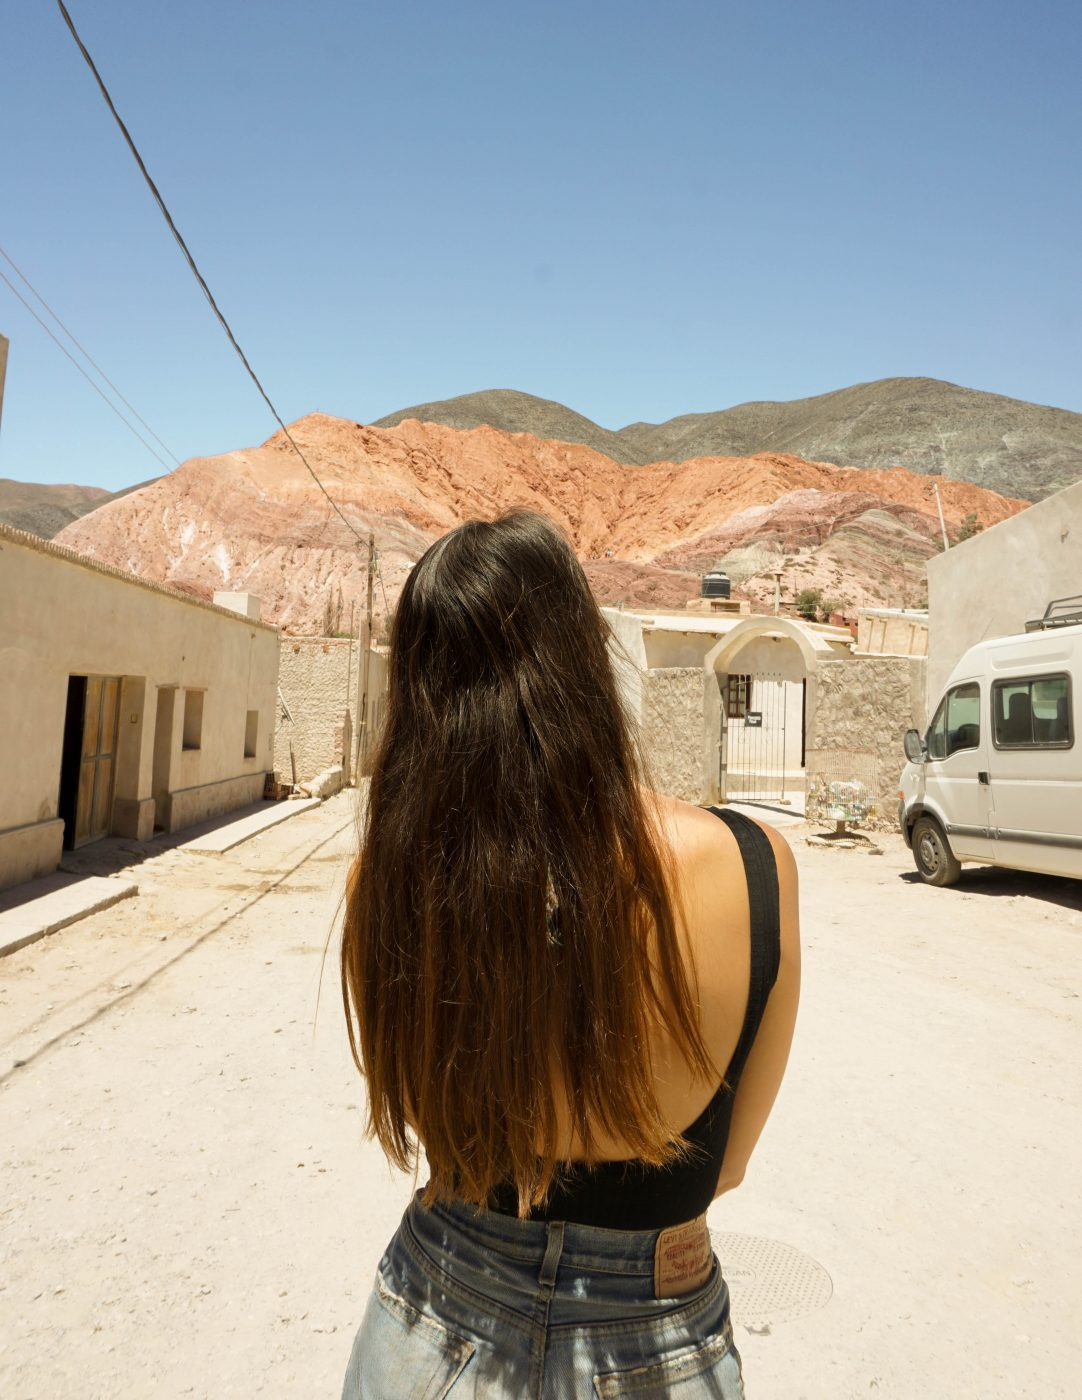 All you need to know to visit Jujuy Argentina Sierra del hornocal Purmamarca